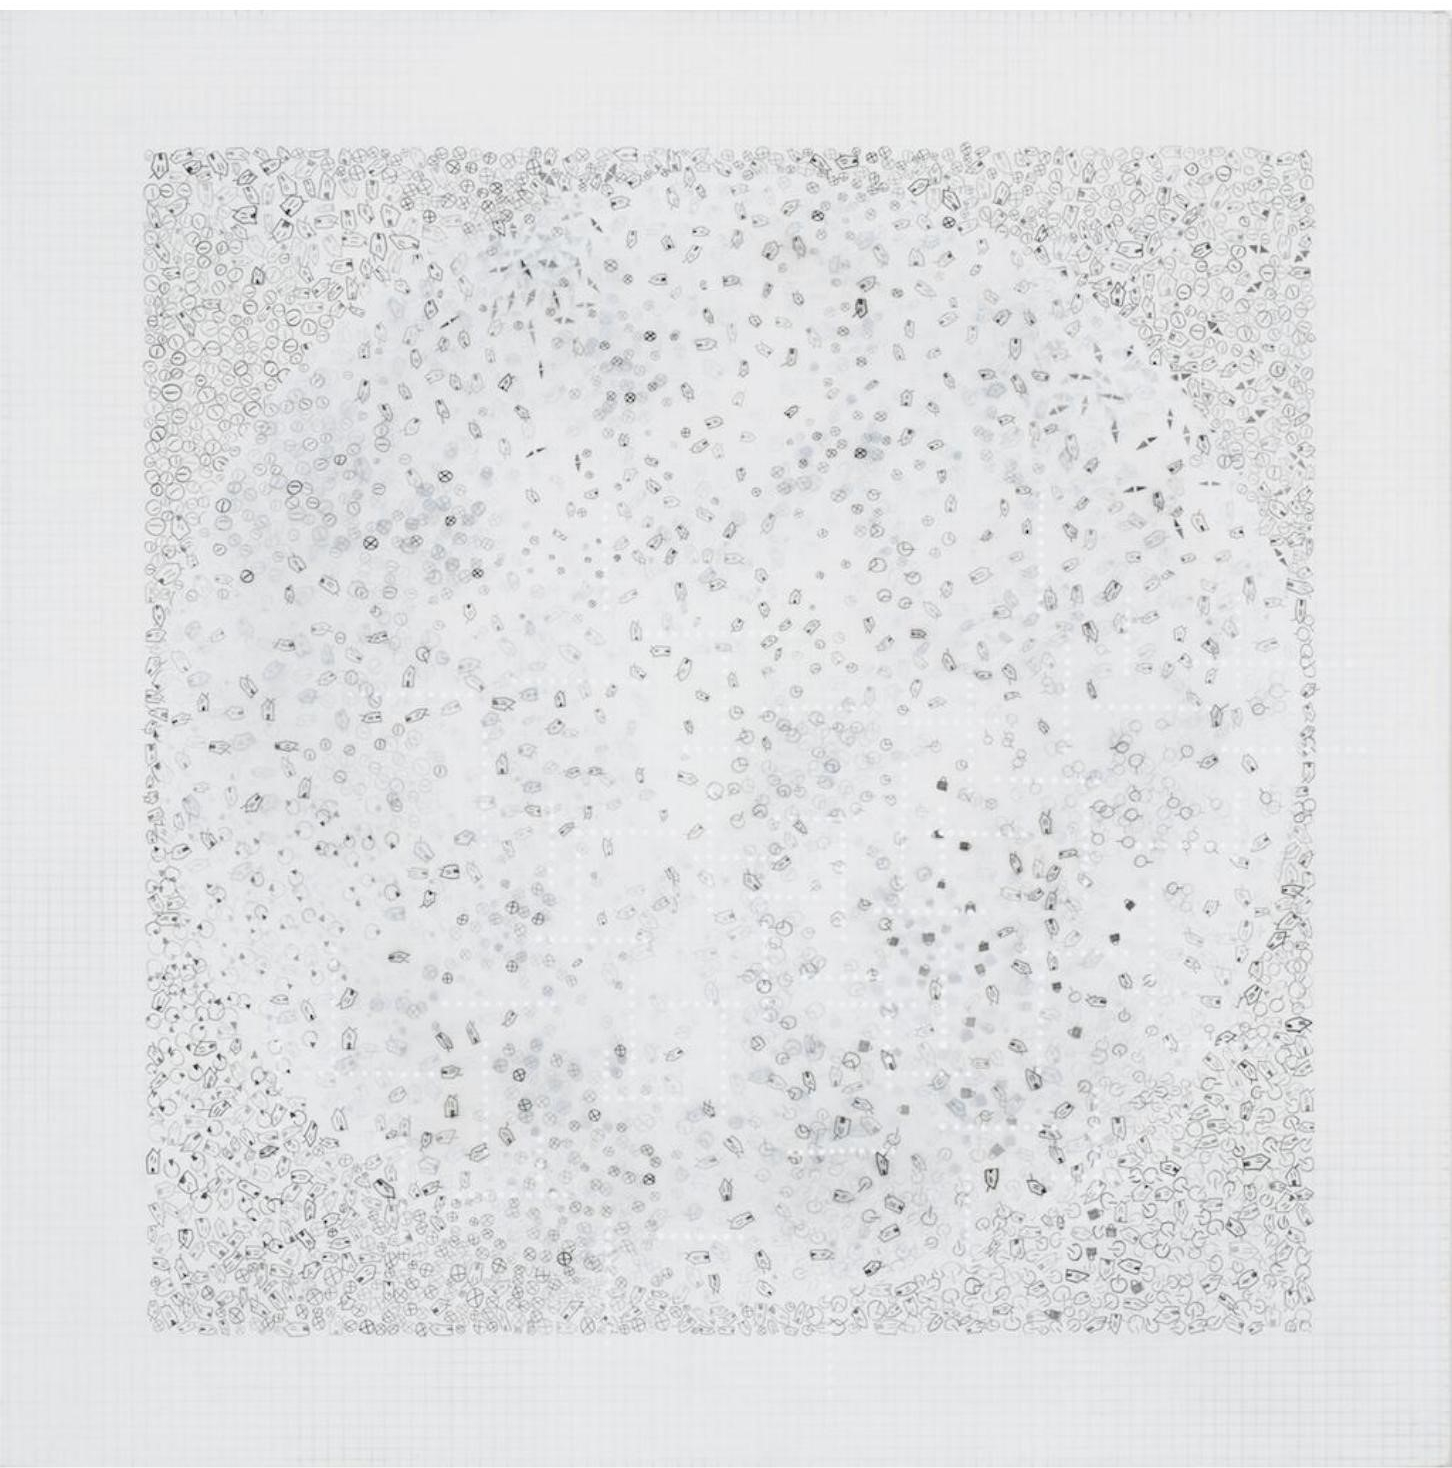 Indira Martina Morre.  Signs II , 2012; Graphite, ink, and gesso on linen over panel. Courtesy the Artist.